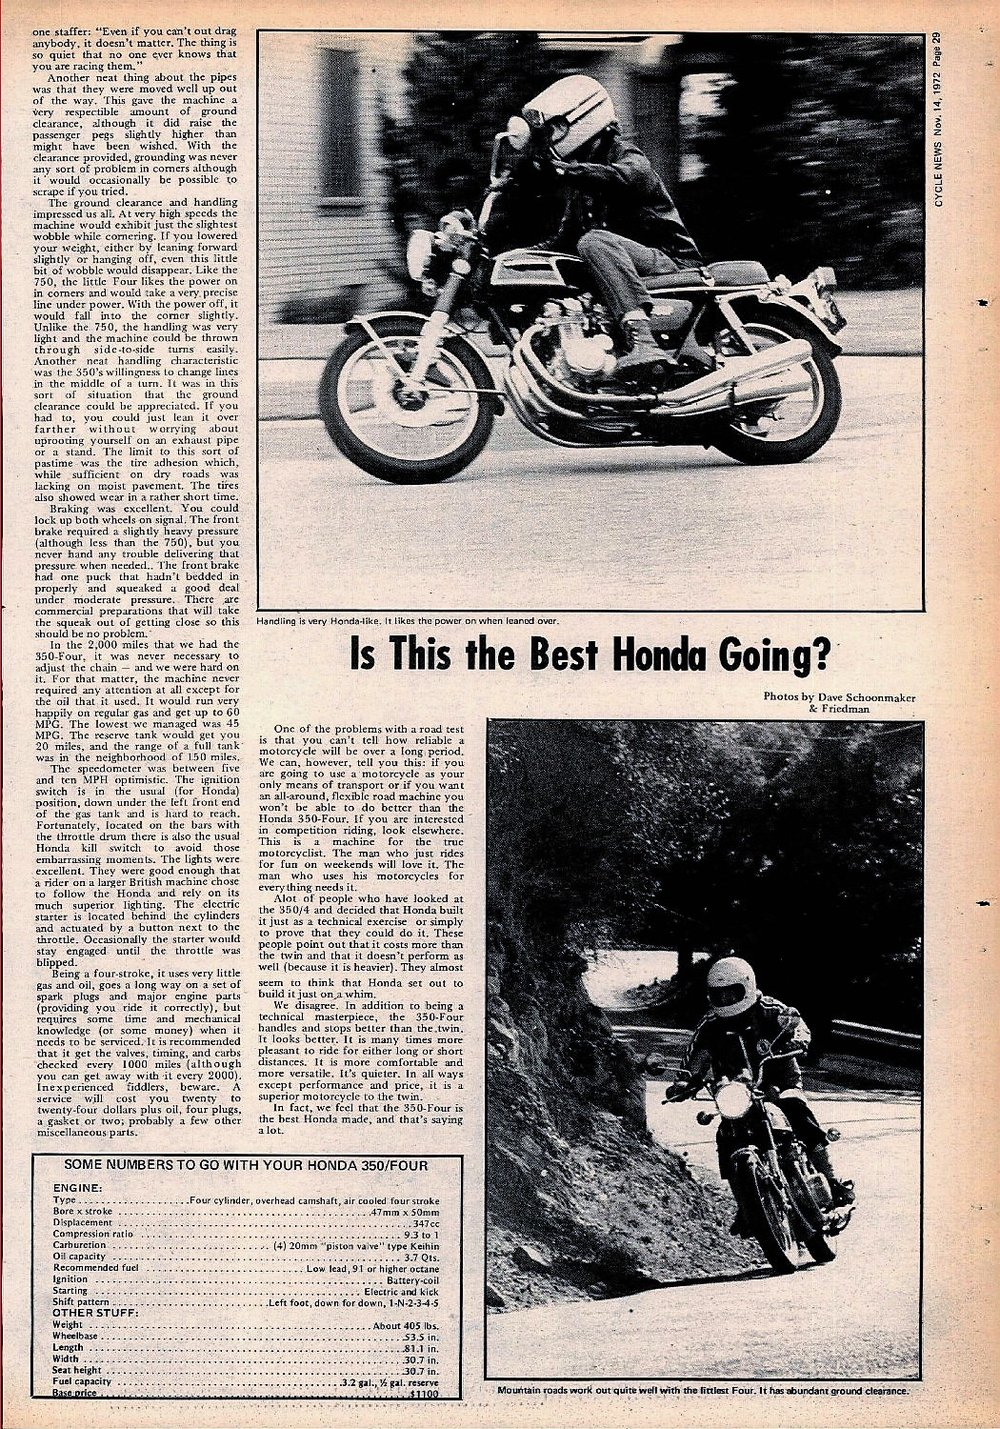 Honda 350 1972 road test 2.jpg